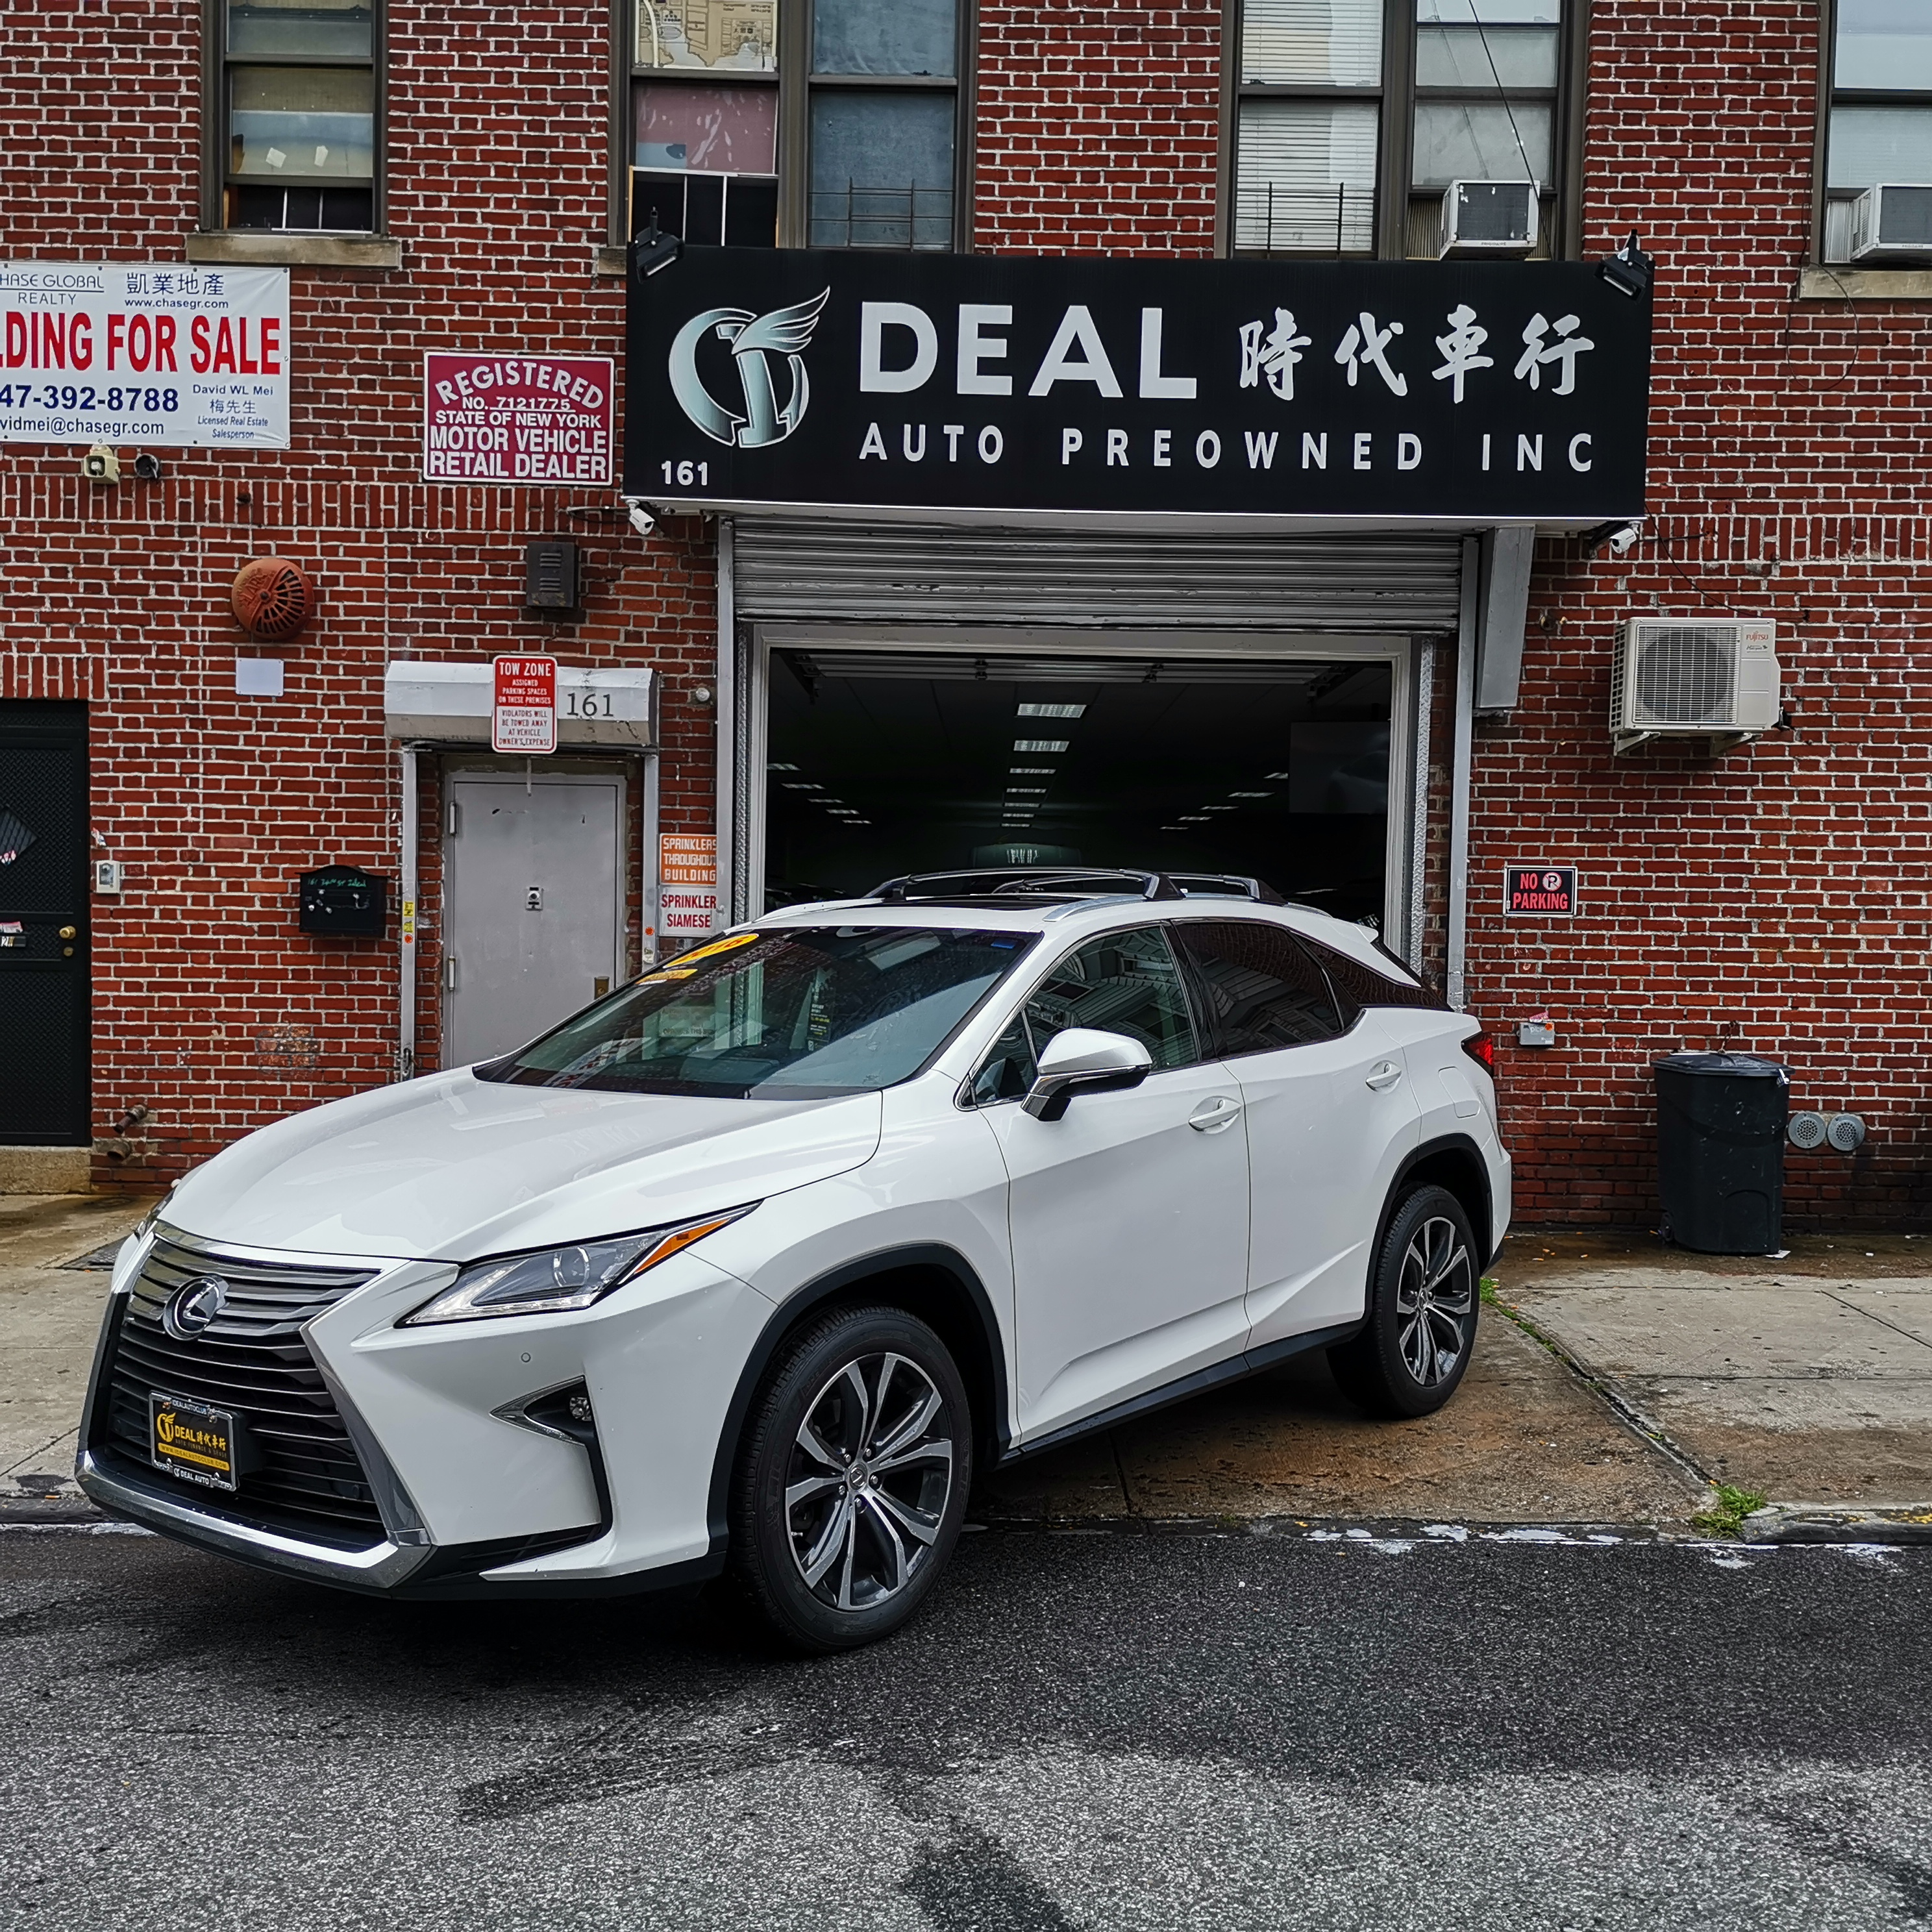 Lexus Pre Owned >> 2016 LEXUS RX 350 AWD WHITE/BLACK 40K MILES STK#13467 | IDEAL AUTO 時代車行|时代车行